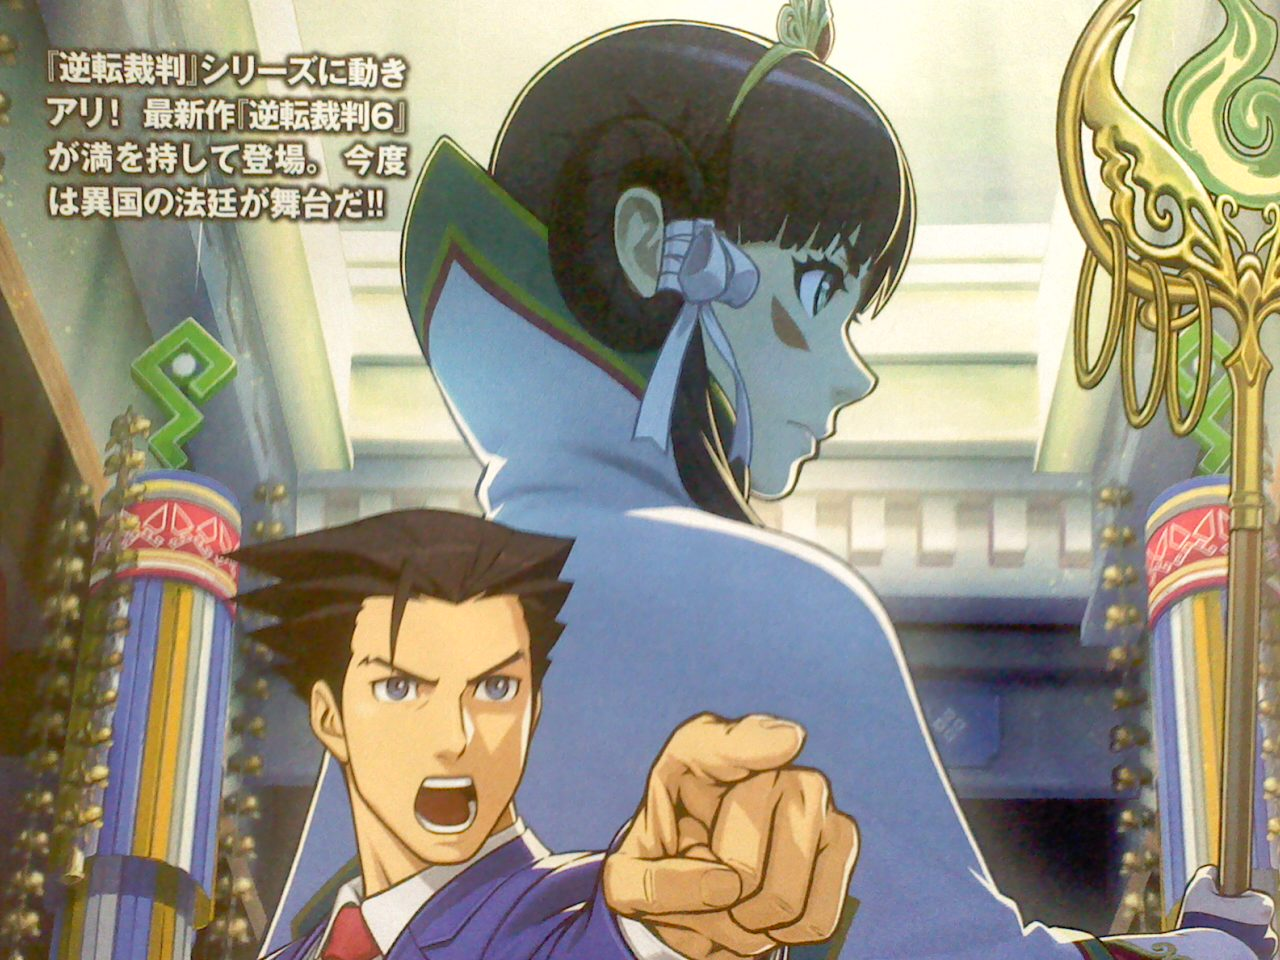 More Ace Attorney 6 Famitsu scans reveal new details